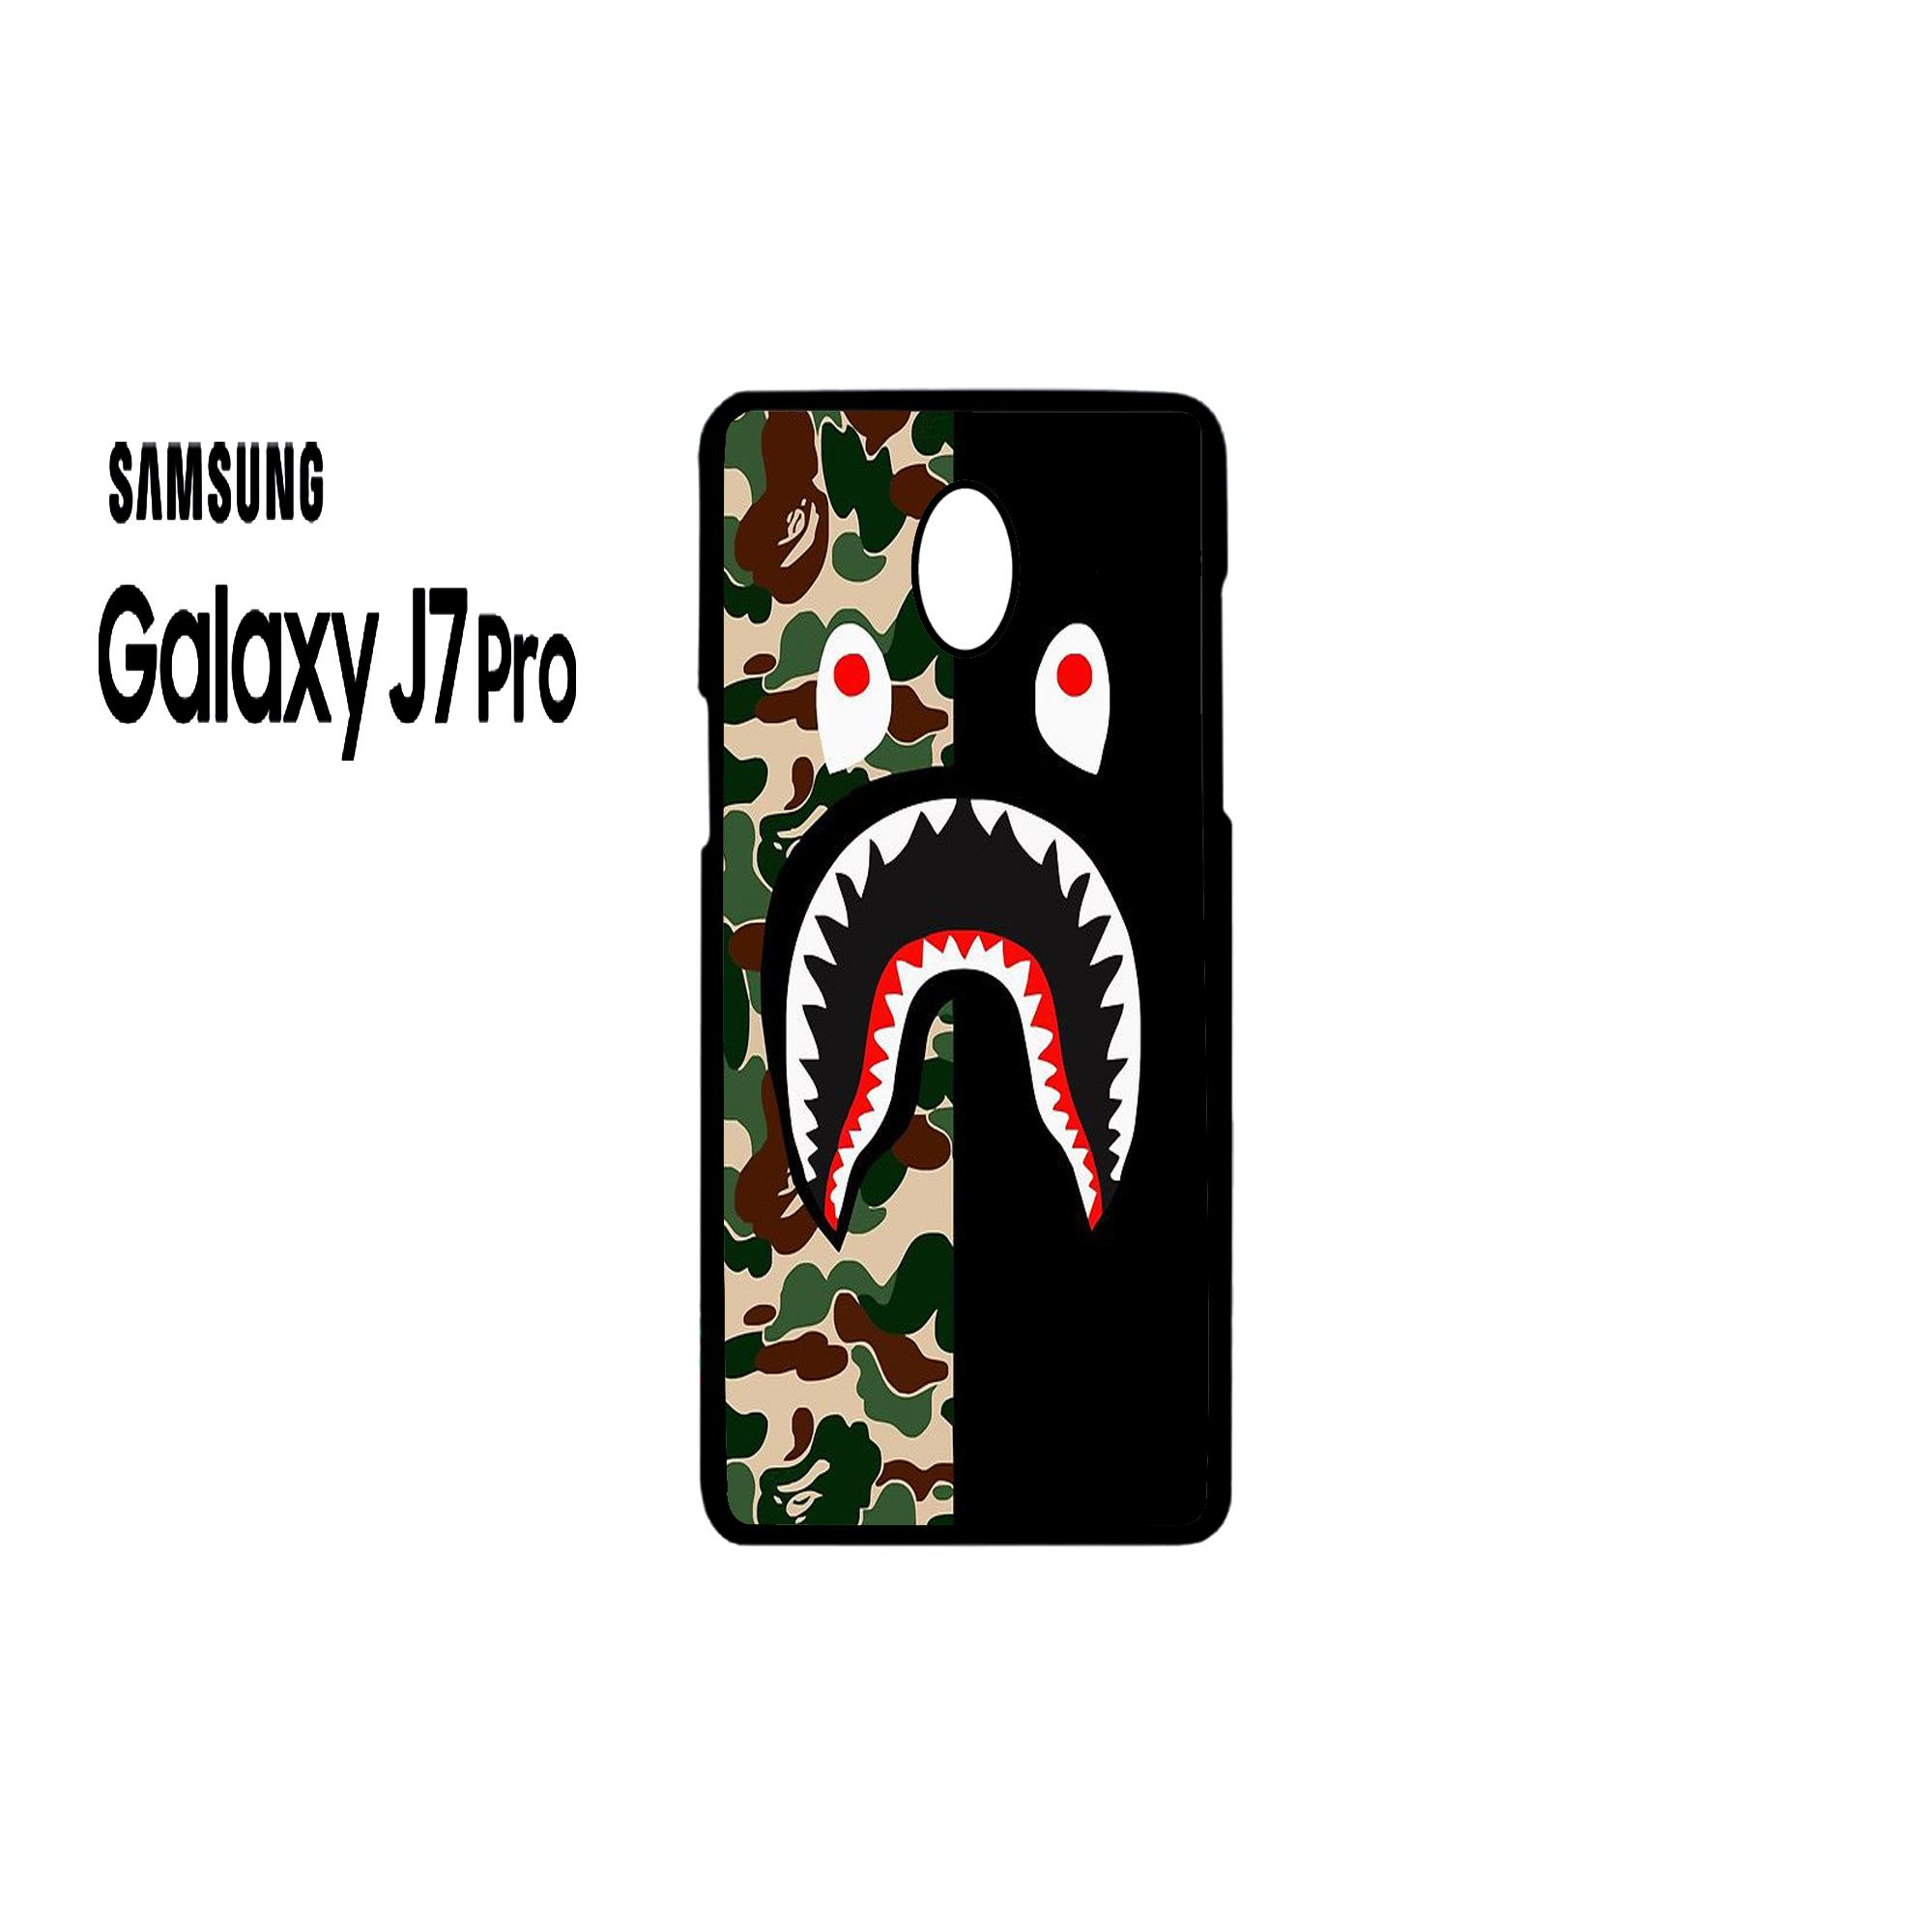 Buy Sell Cheapest Diskon 15 J Best Quality Product Deals Sofcase Kotak Samsung J7 Putih Rajamurah Fasion Printing Case Galaxy J7pro